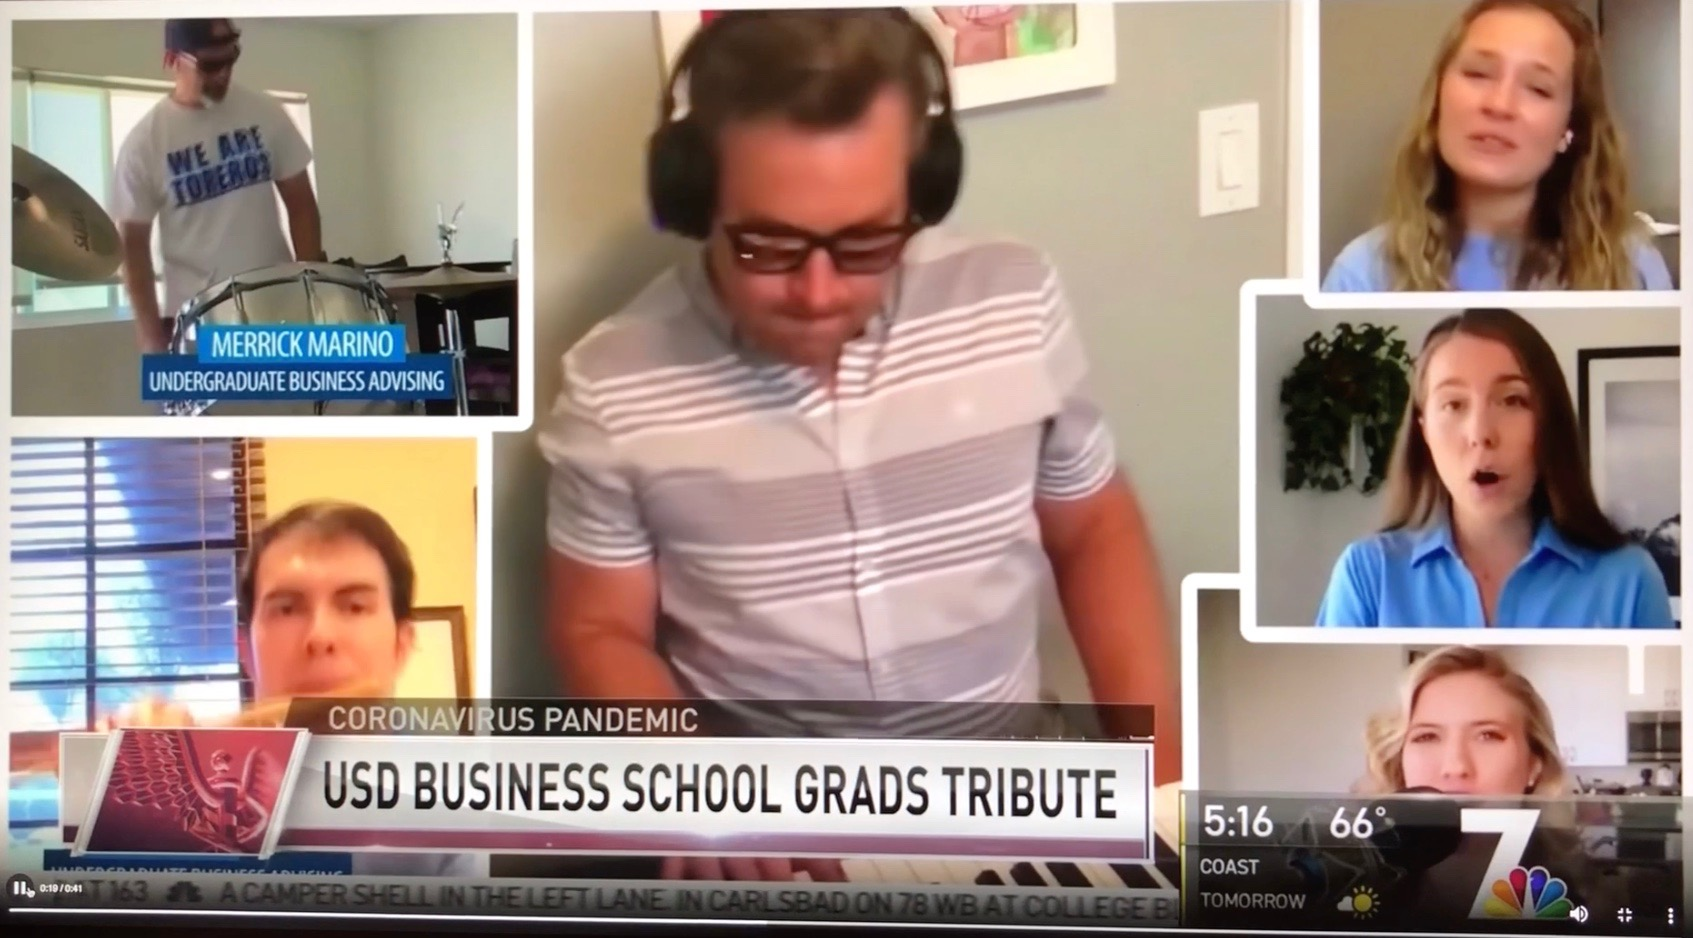 News segment capture: USD Business School Grads Tribute